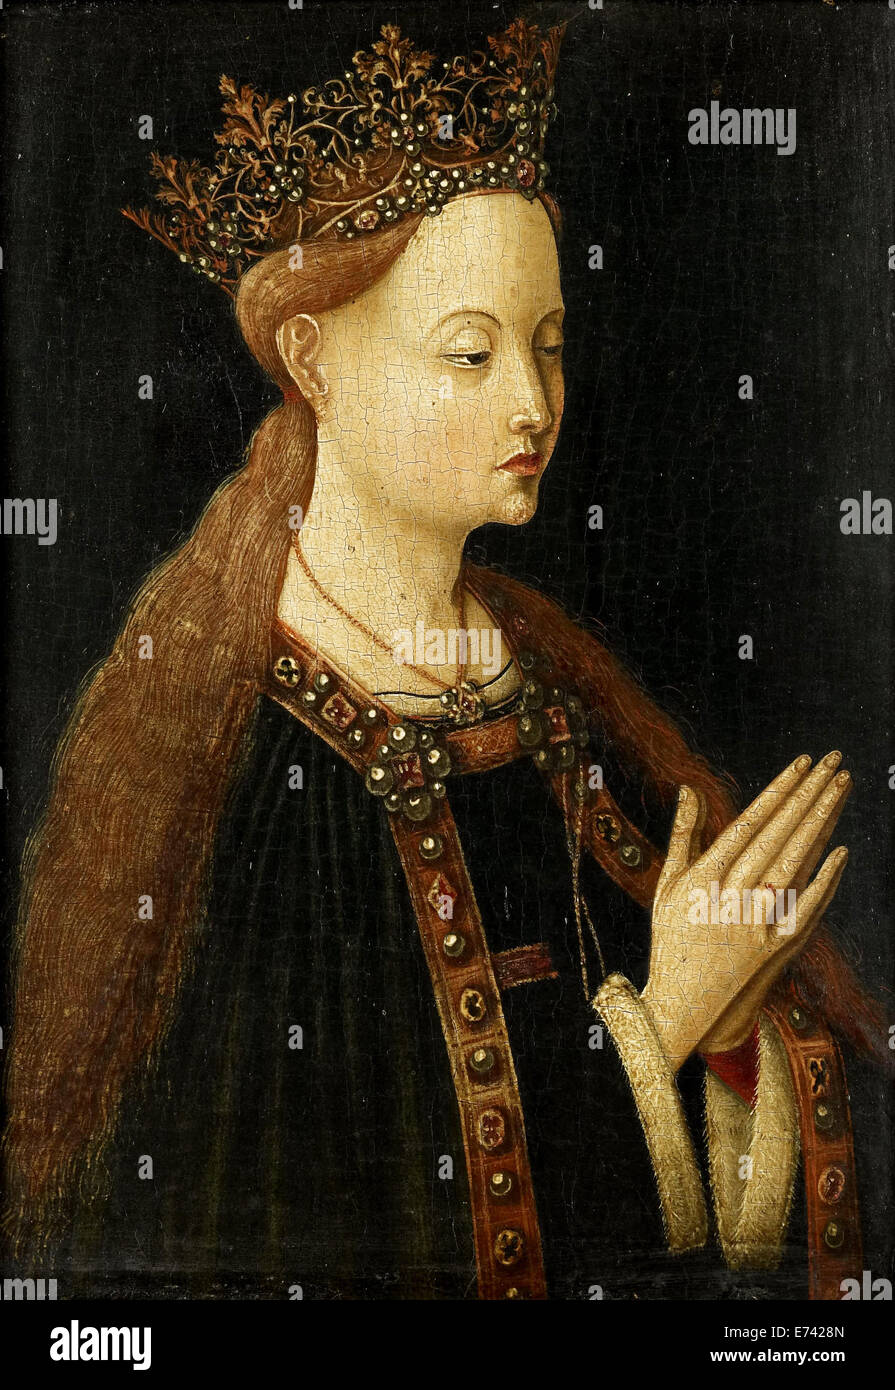 Maria - by unknown artist, 1500 - Stock Image